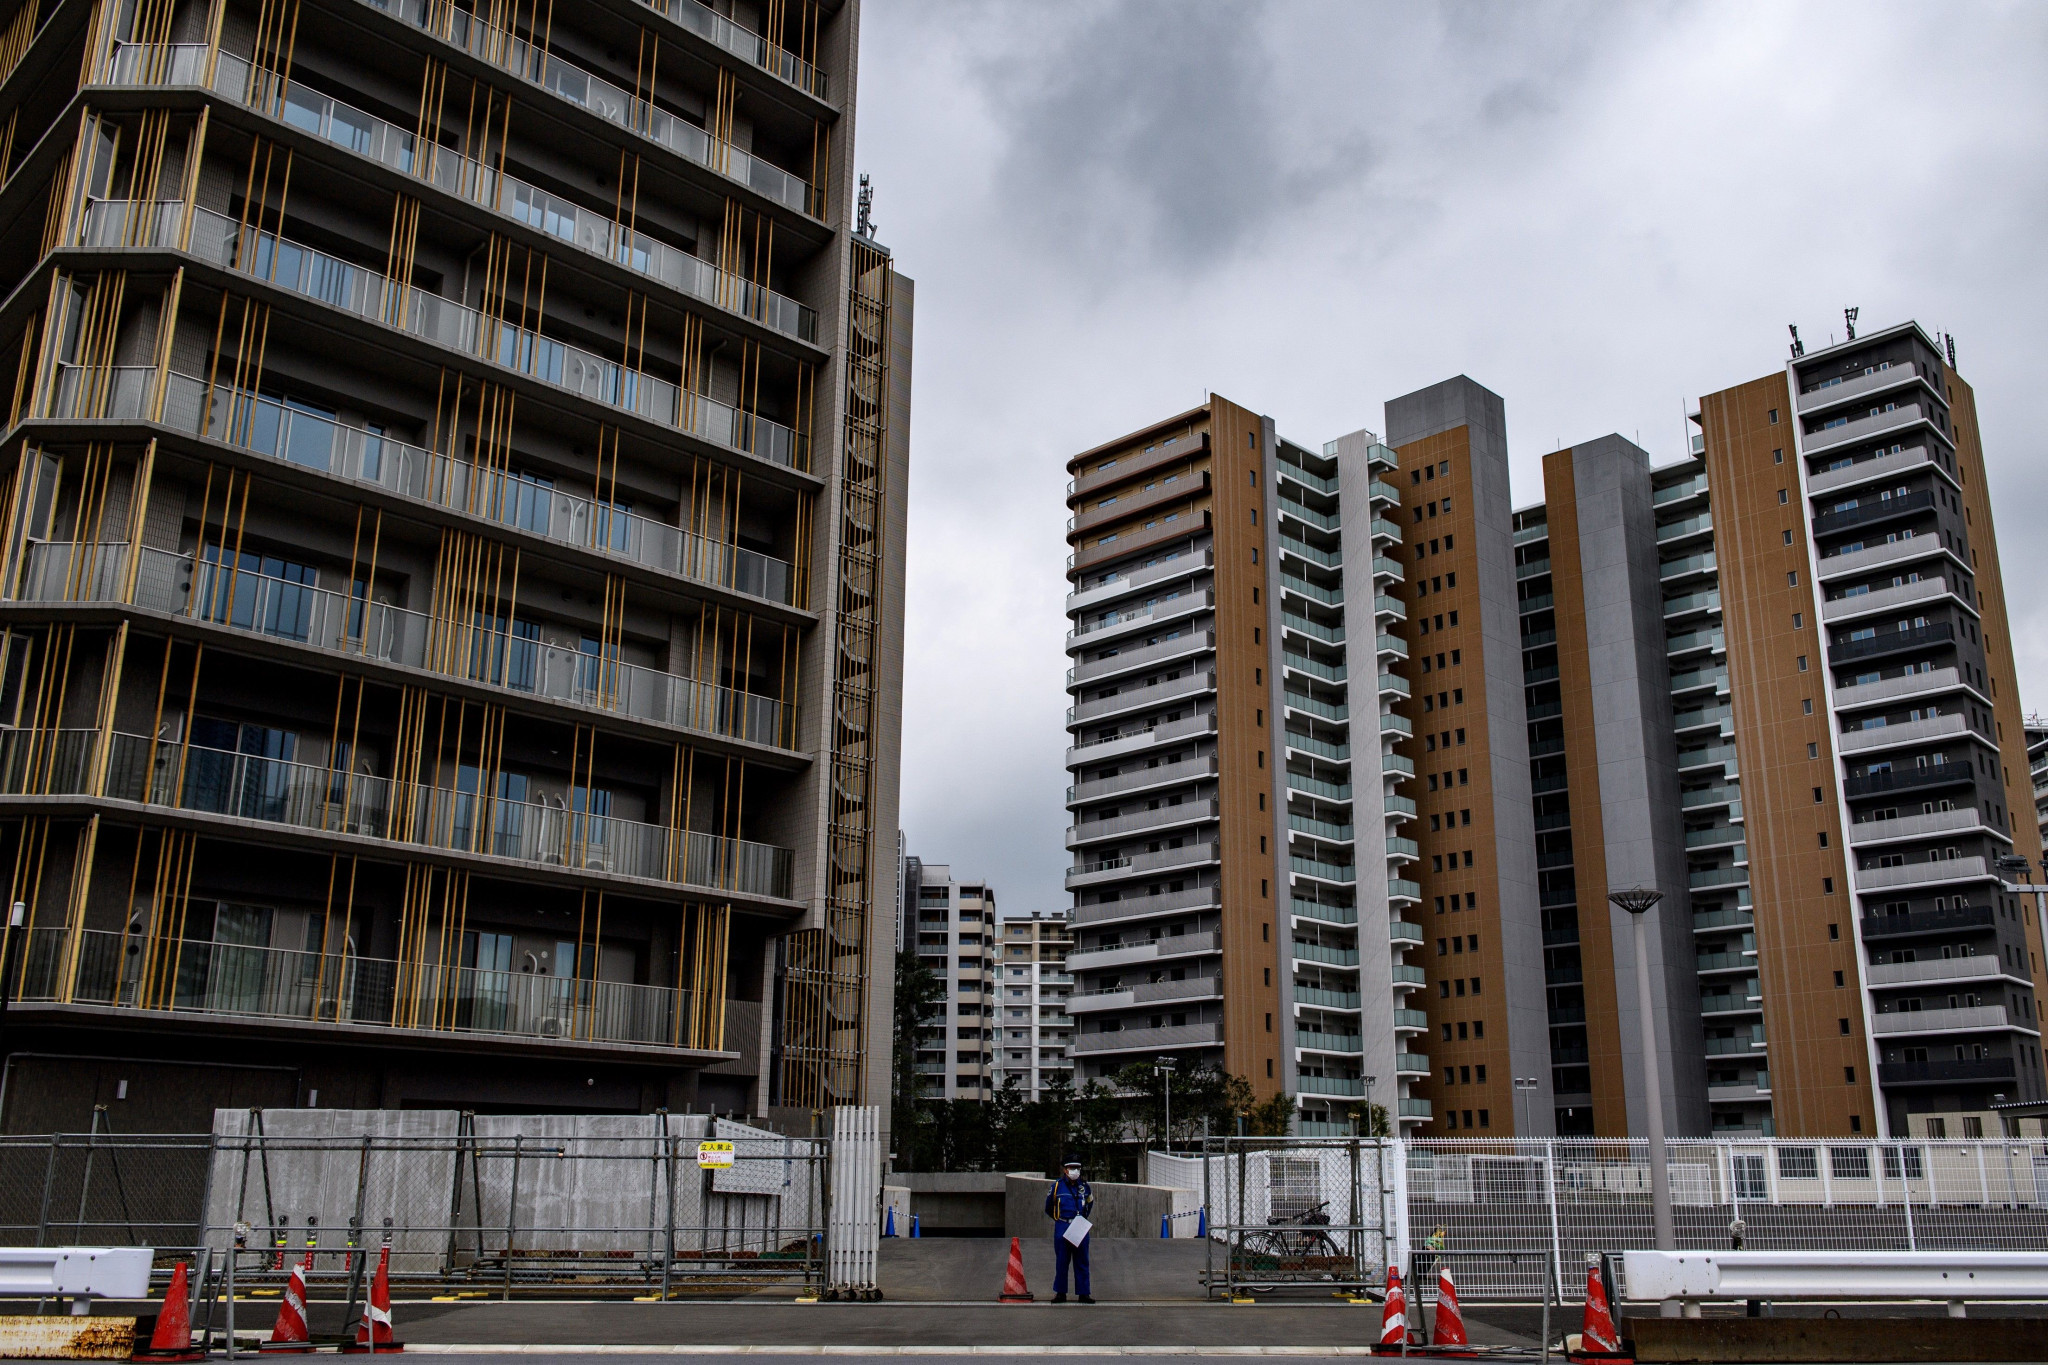 Tokyo 2020 Athletes' Village to have